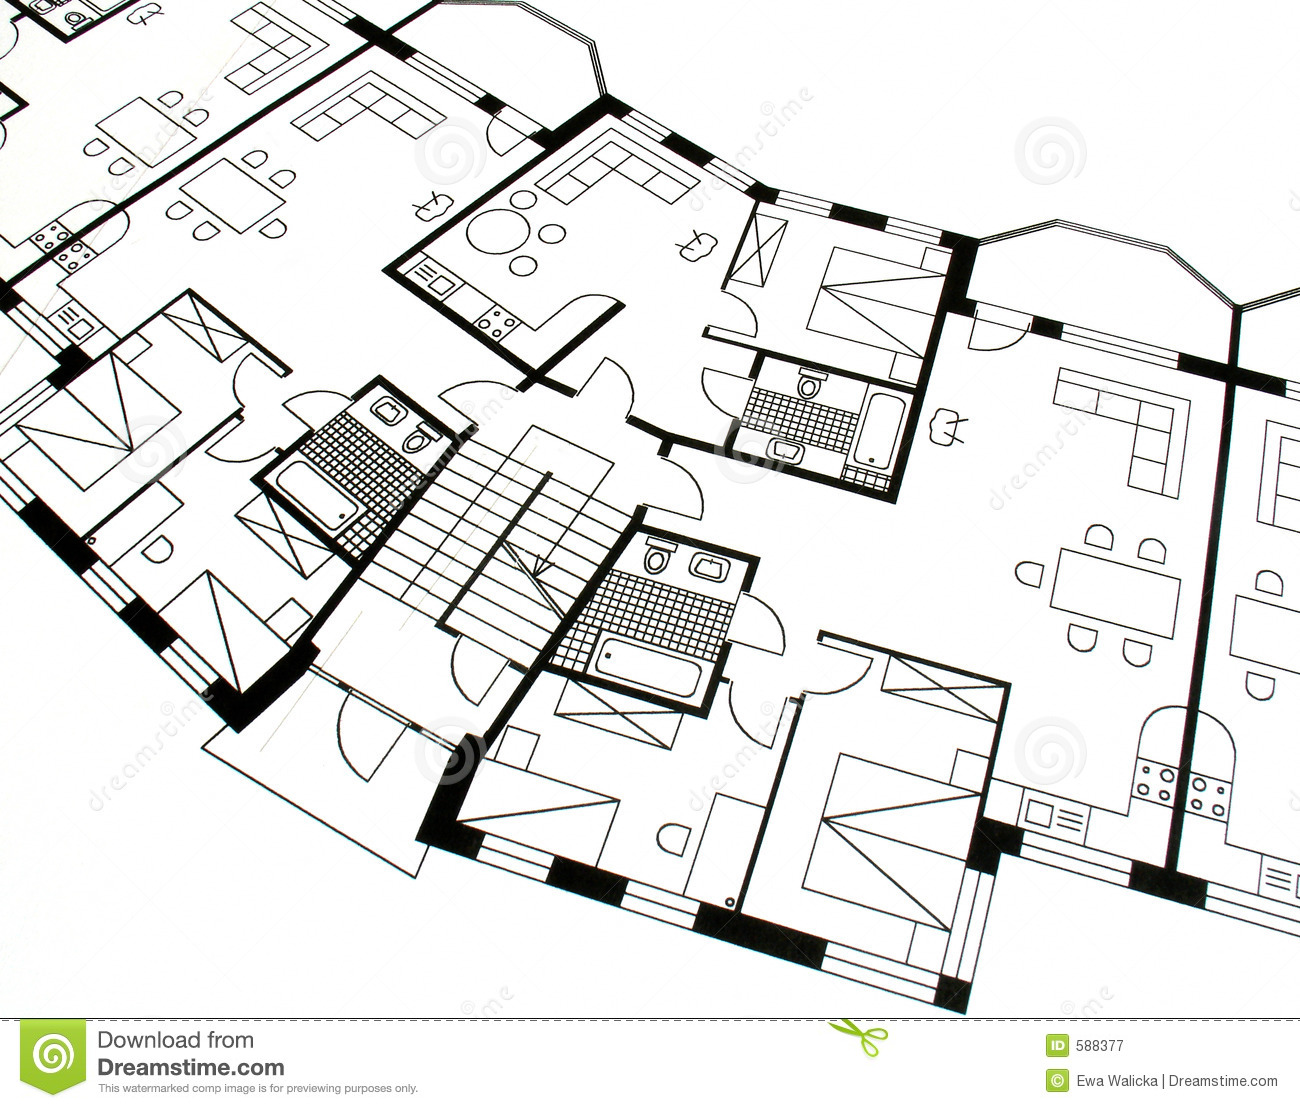 Architectural plan royalty free stock photography image for Architecture plan